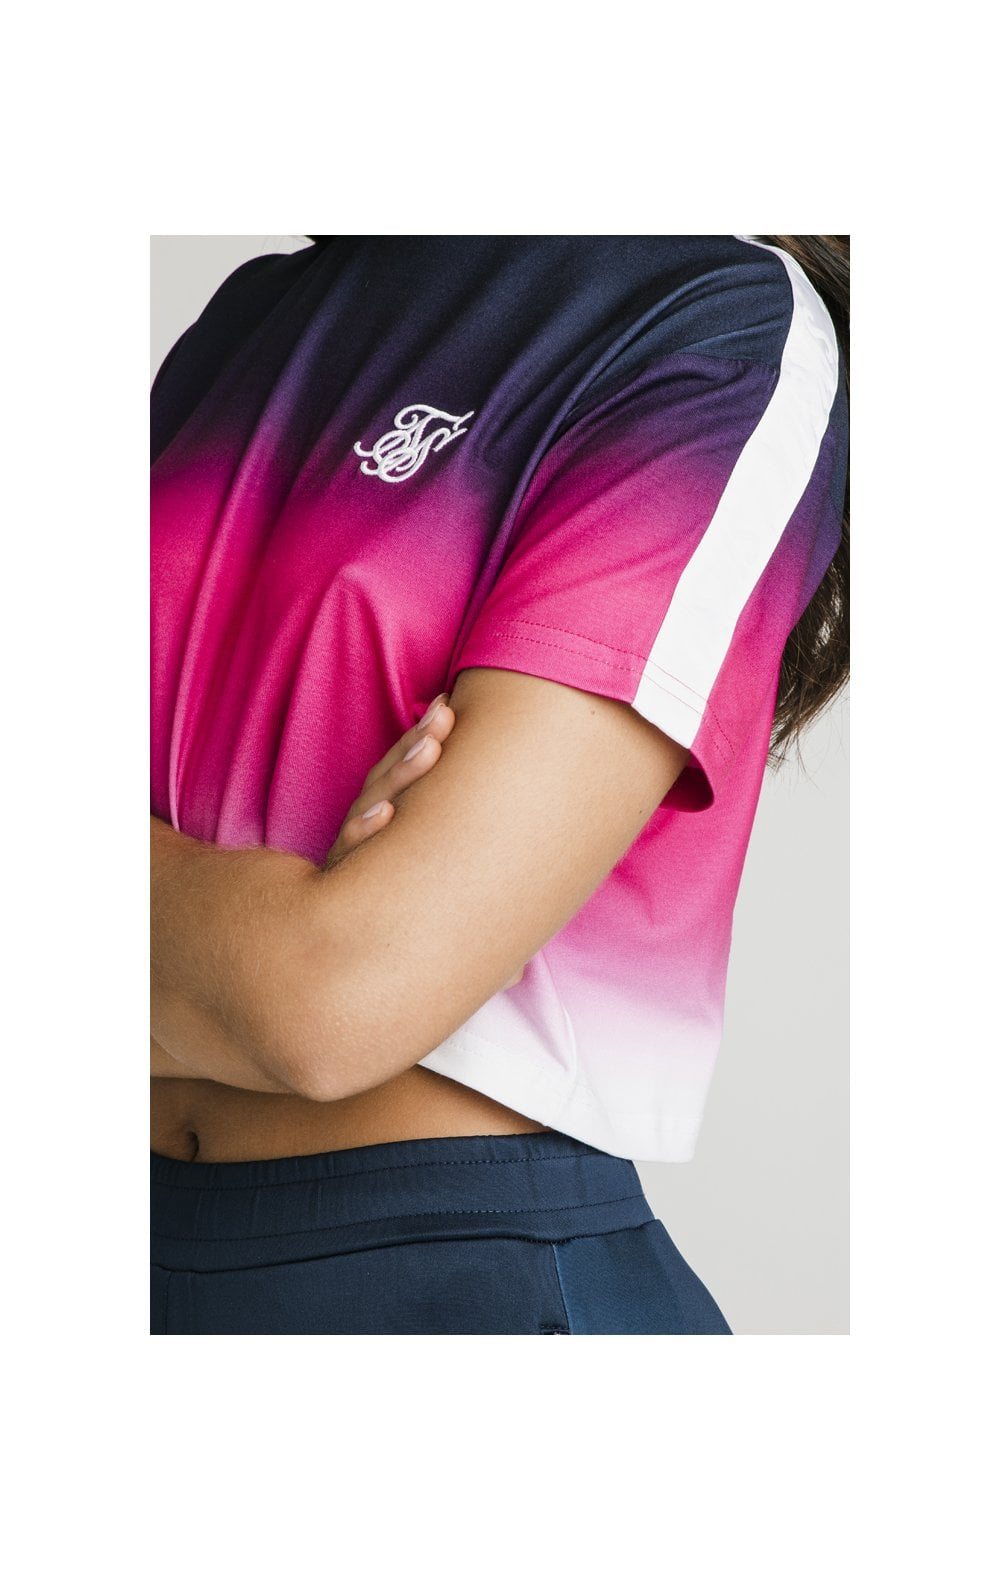 Load image into Gallery viewer, SikSilk Fade Tape Crop Tee - Navy, Pink & White (1)